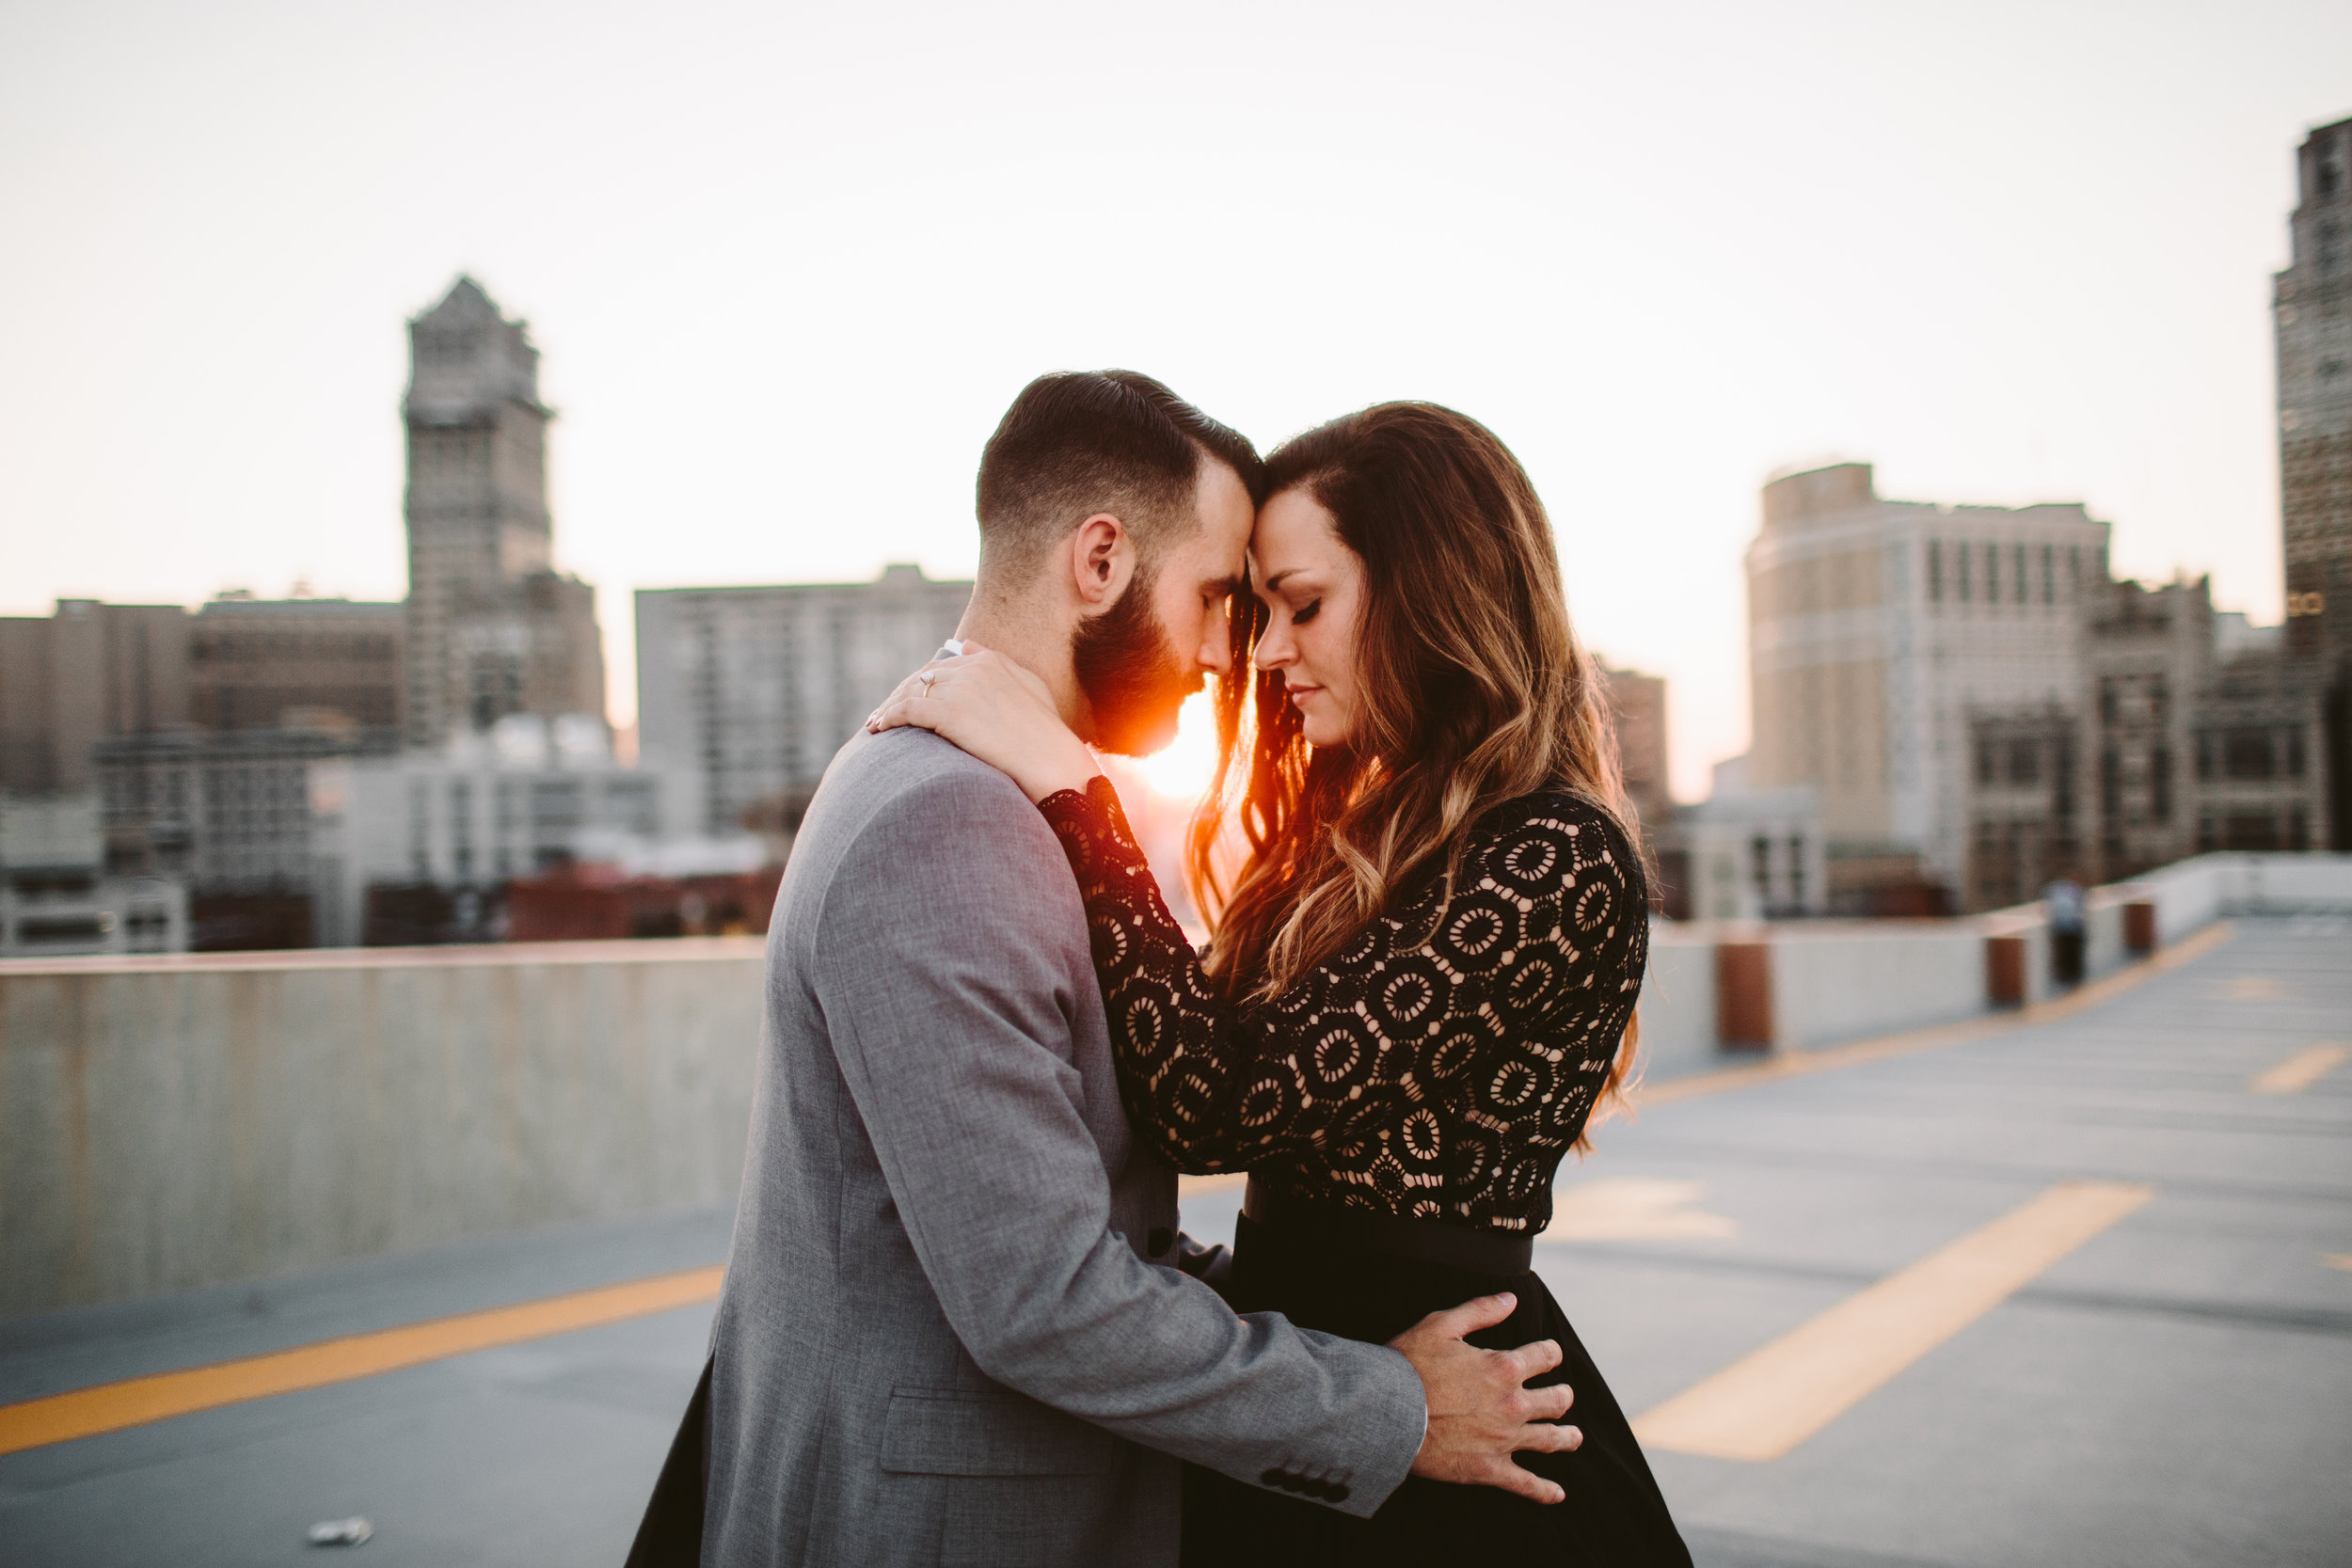 detroit z lot rooftop engagement session at sunset